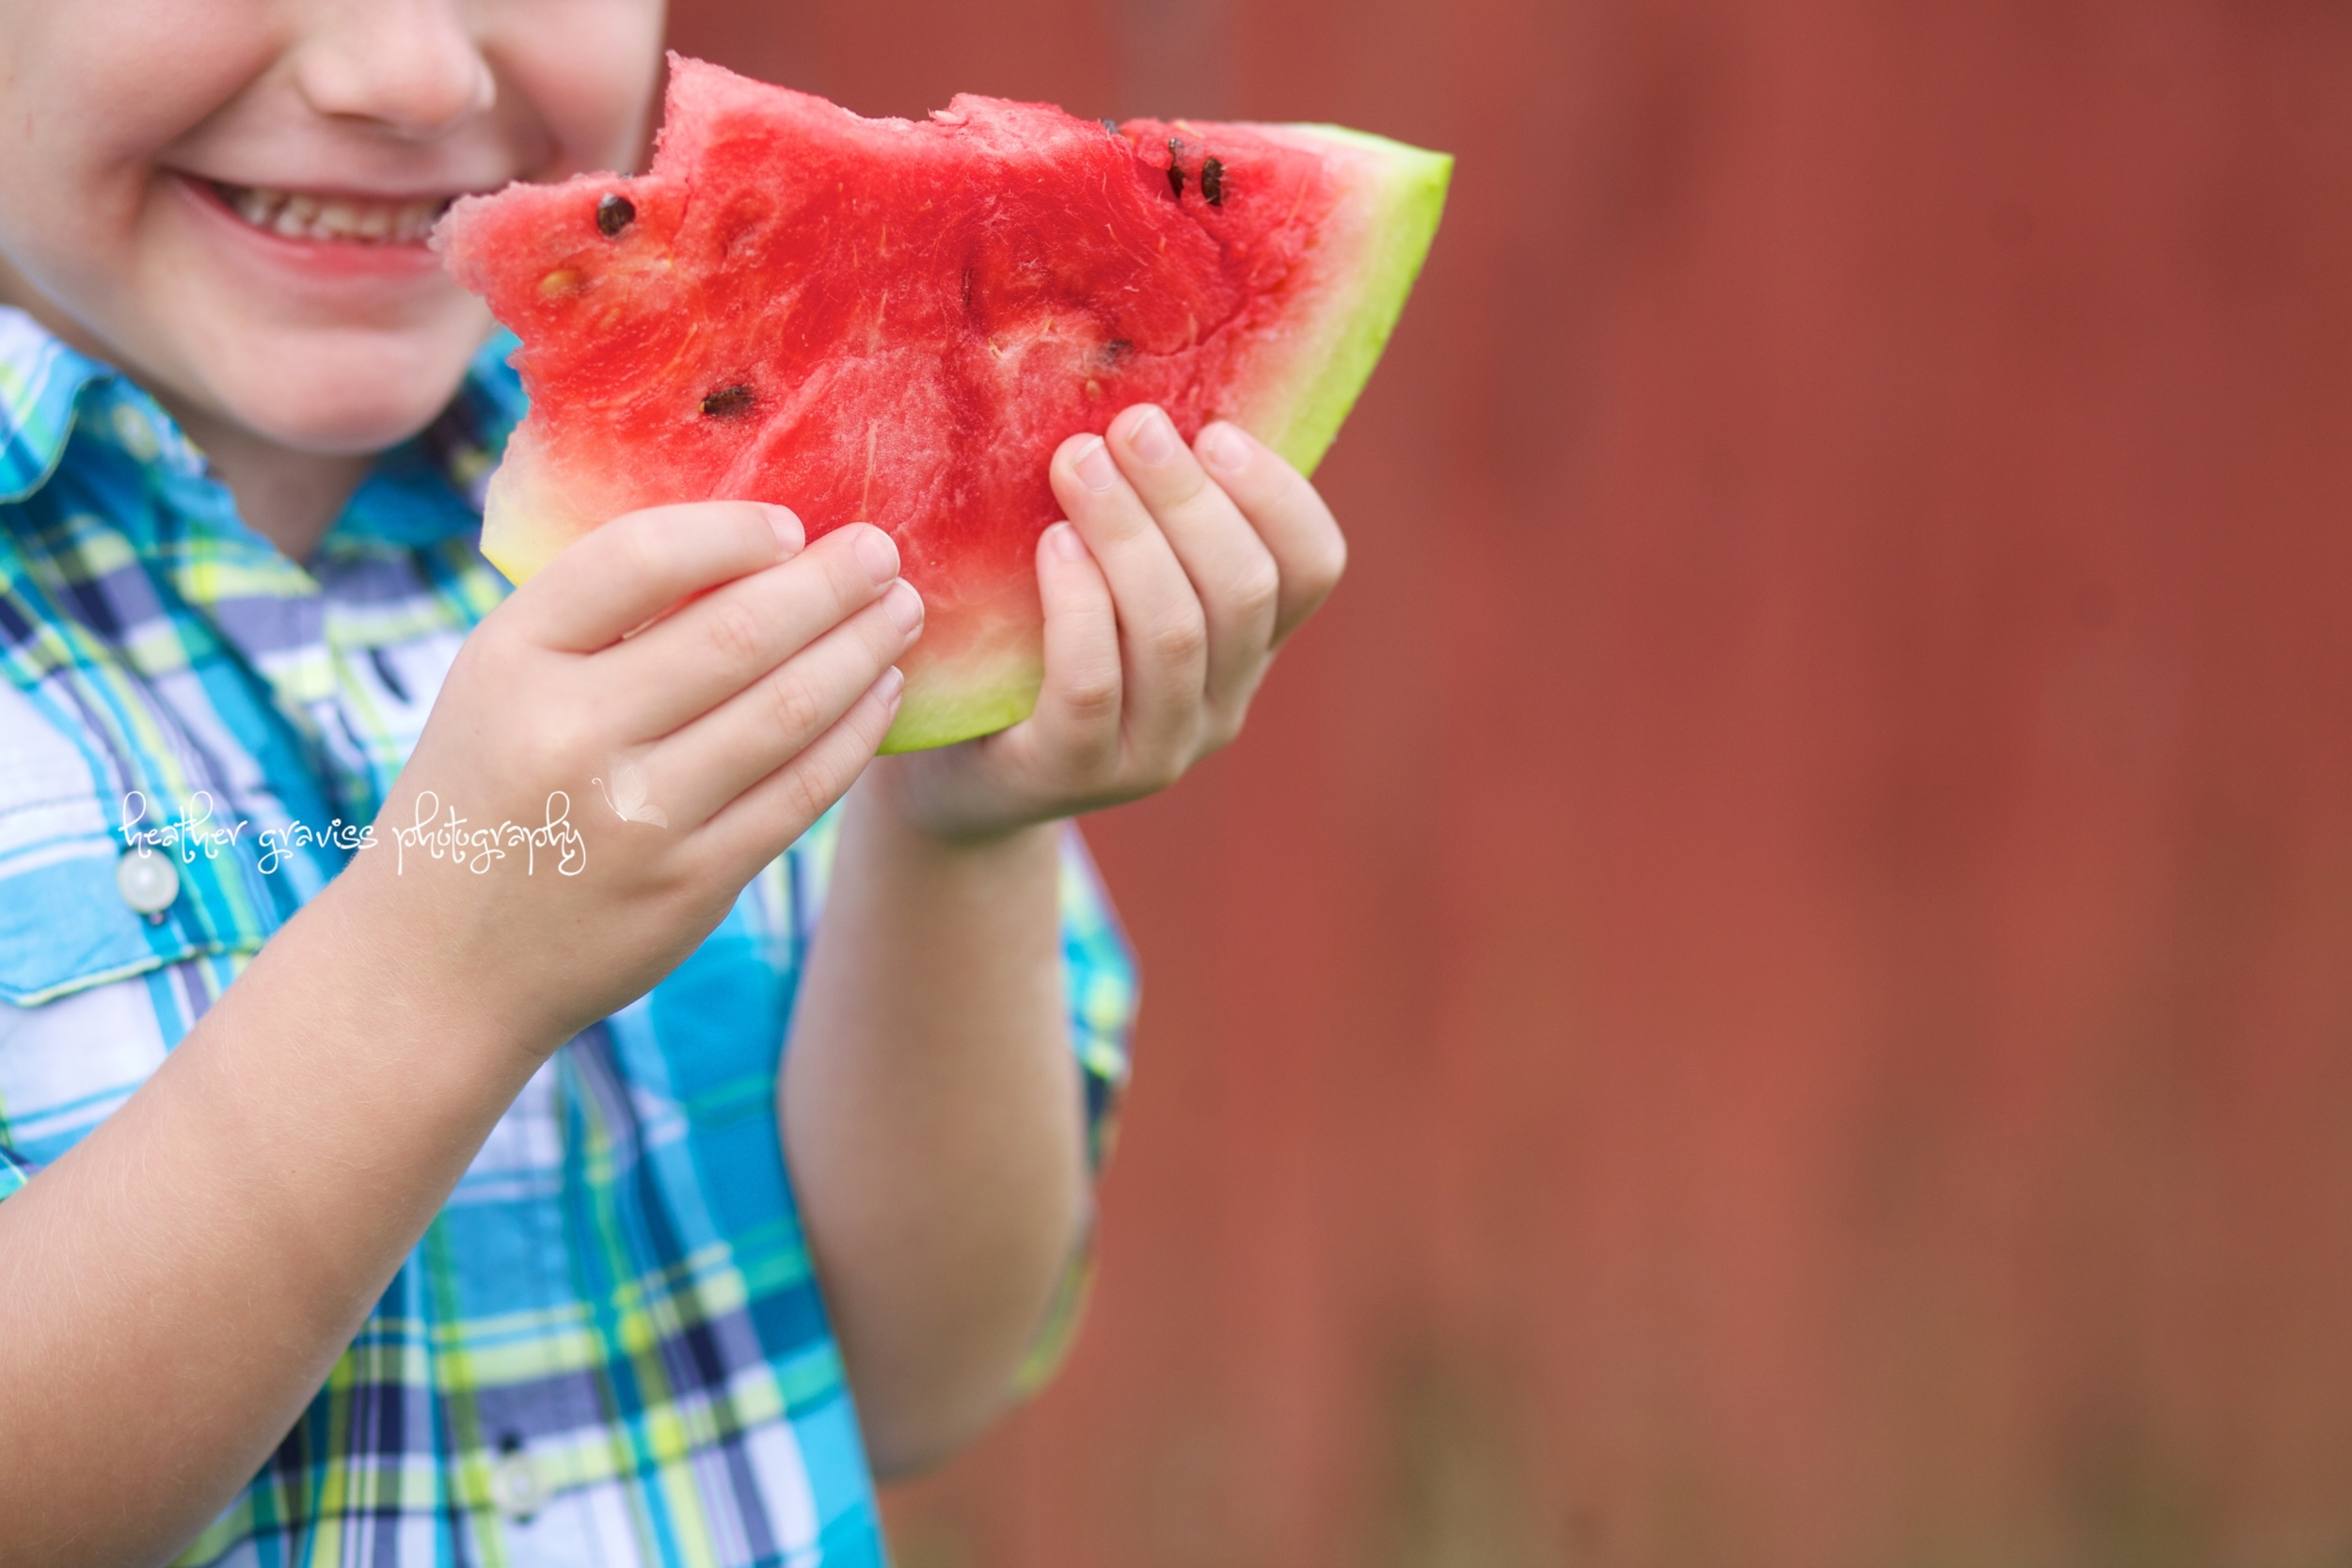 hands with watermelon